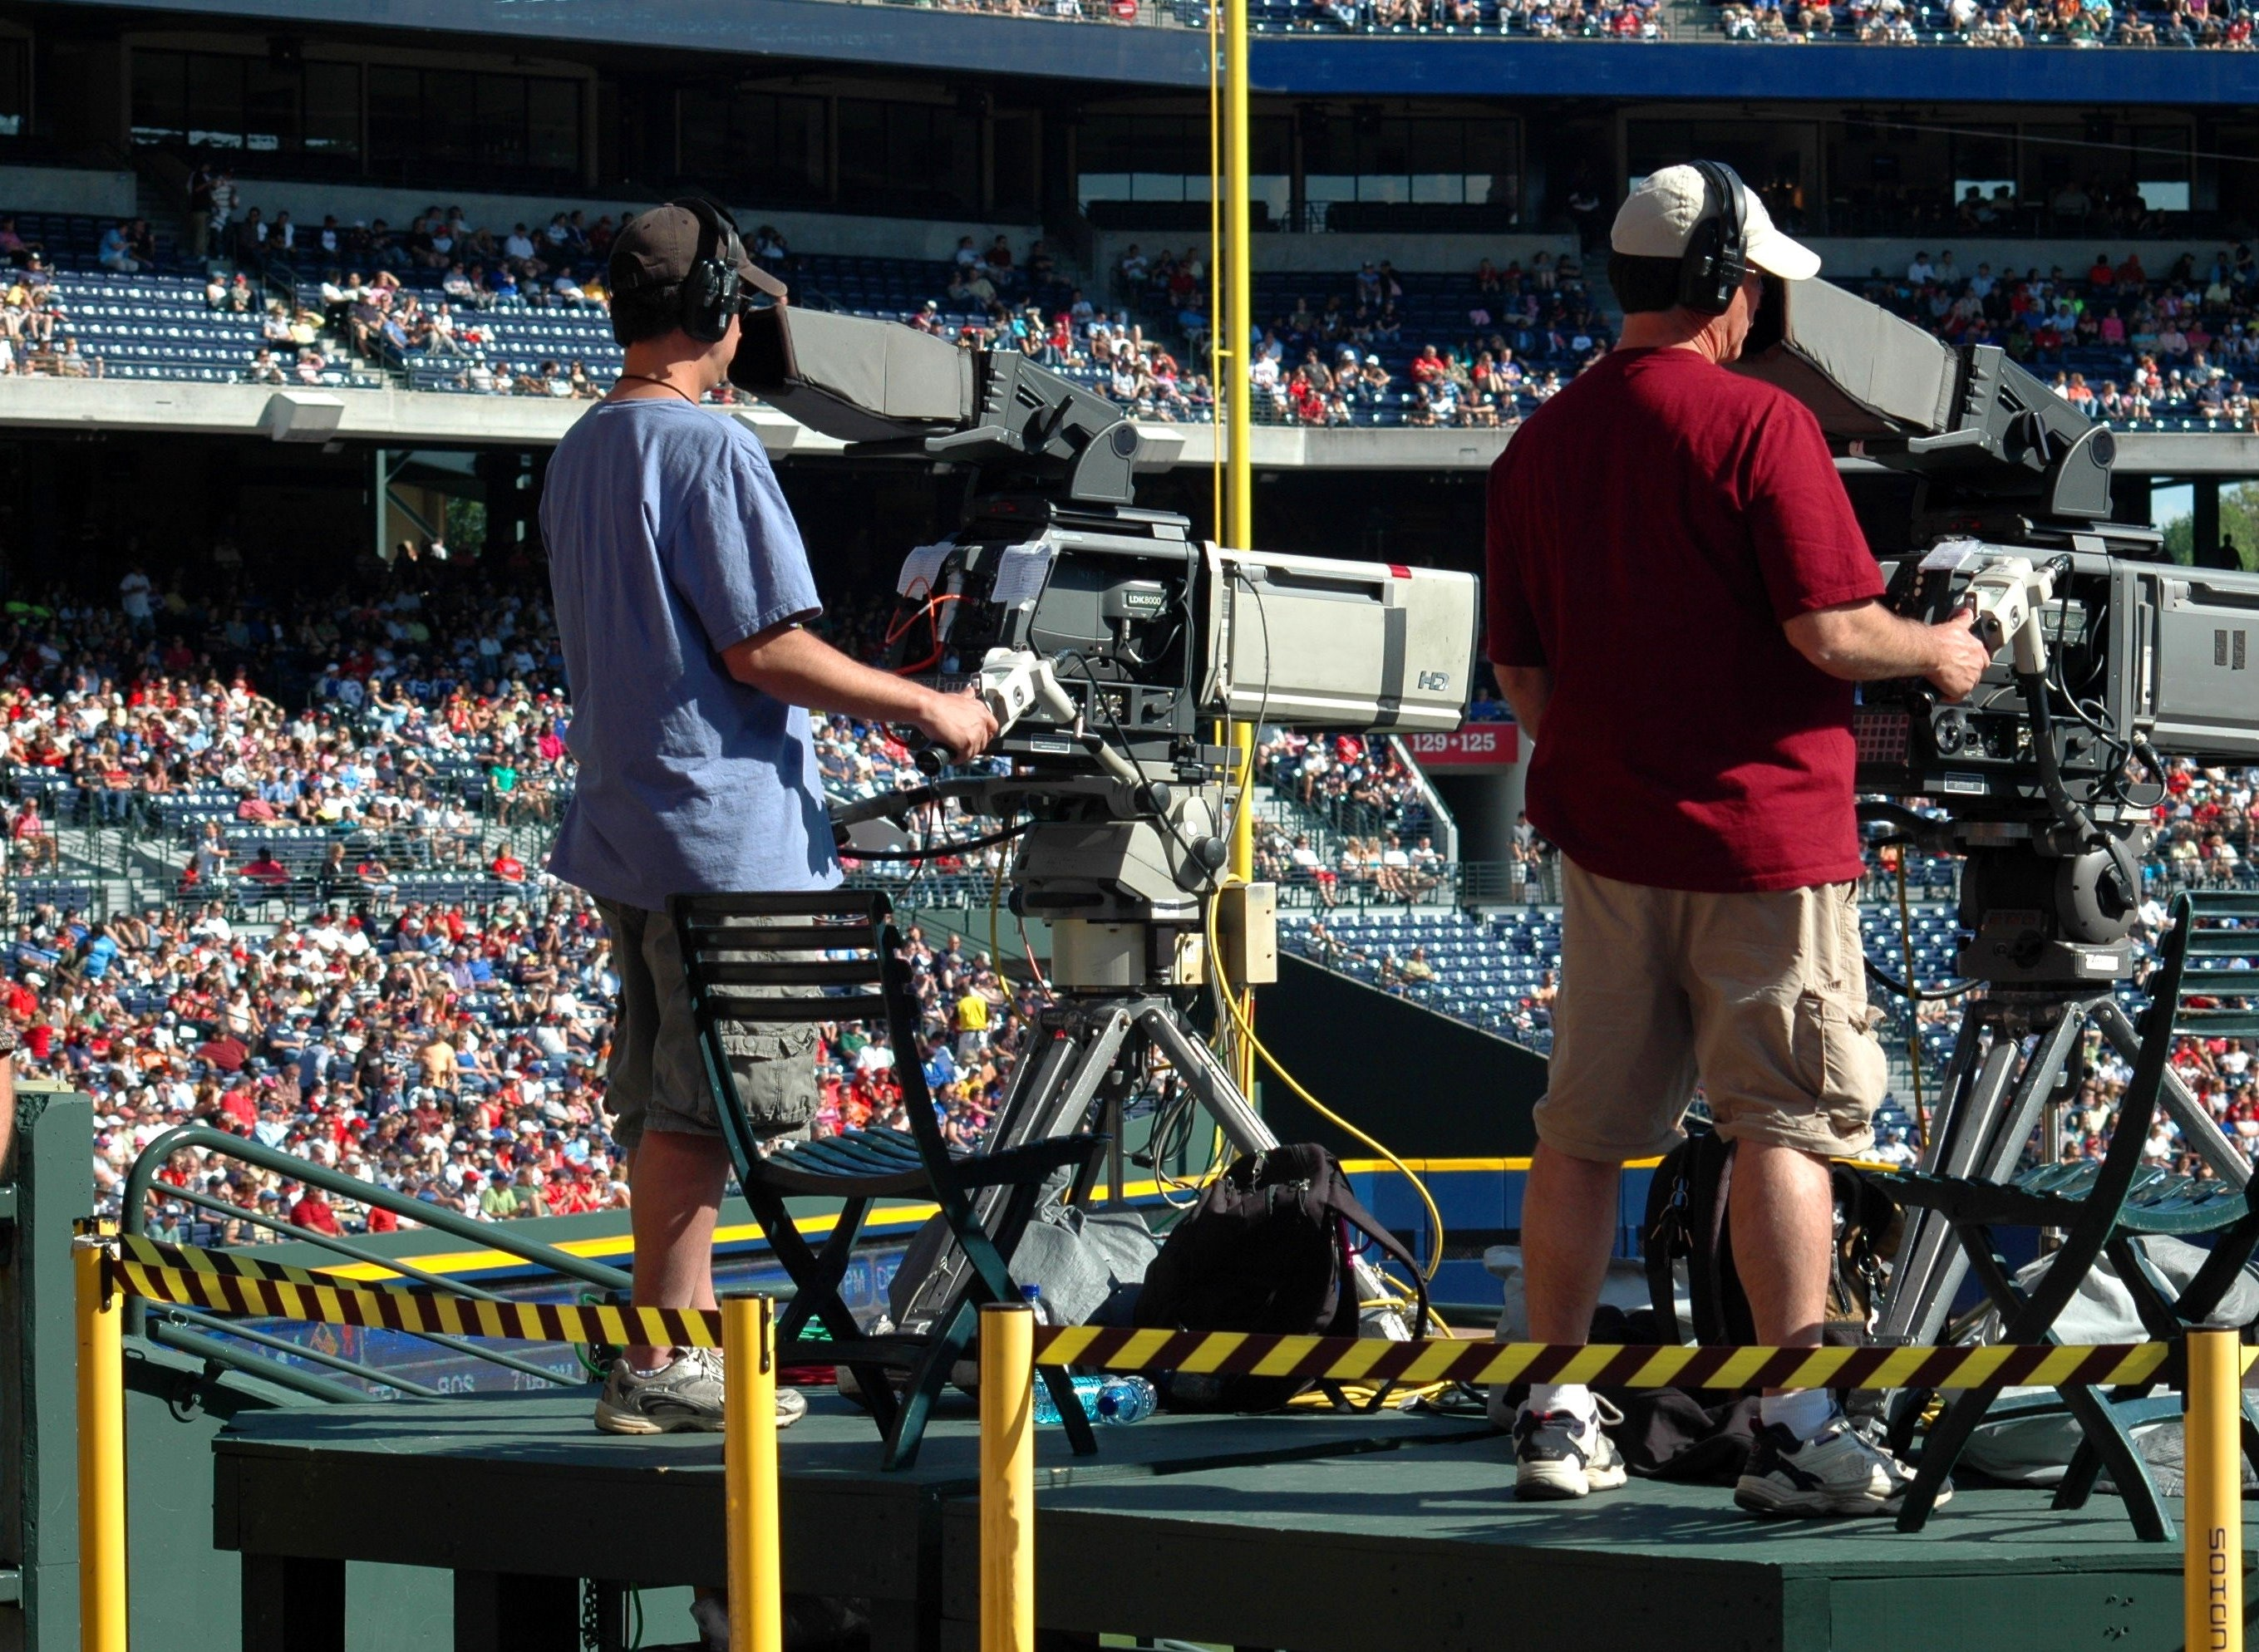 Camera people taking video at a sporting venue